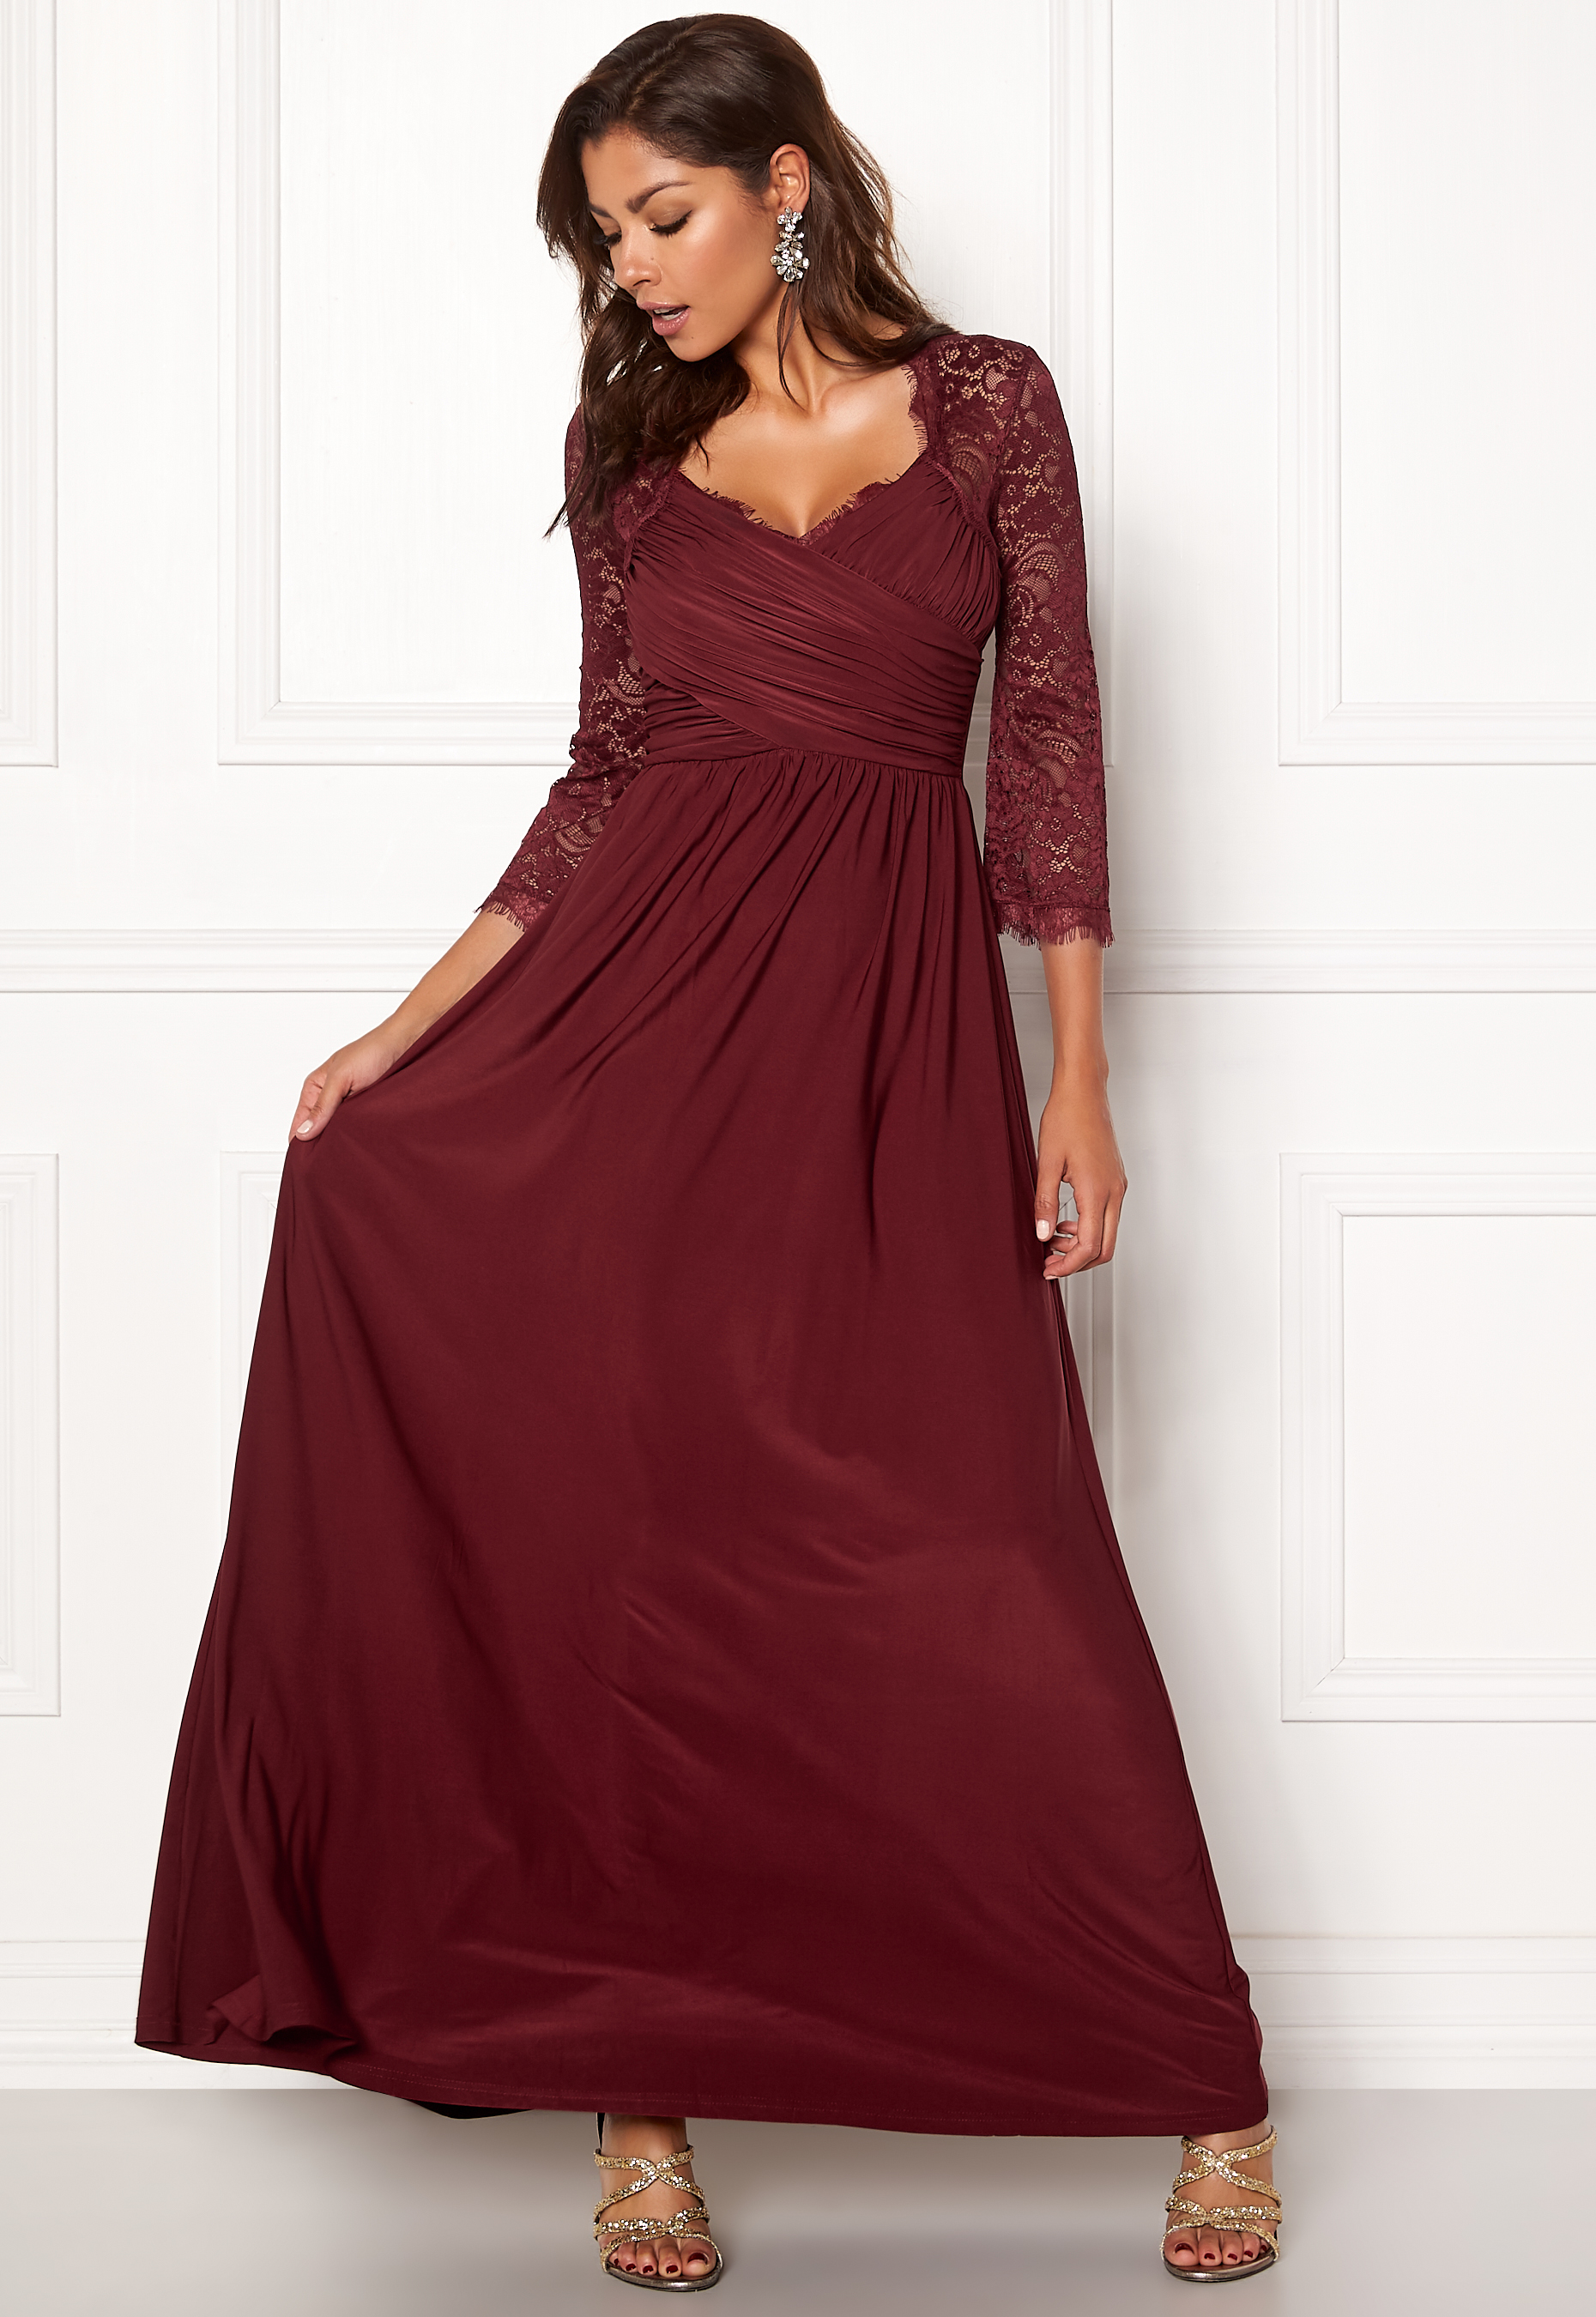 Chiara Forthi Nathalia Maxi Dress Wine-red - Bubbleroom ab93ebfc97